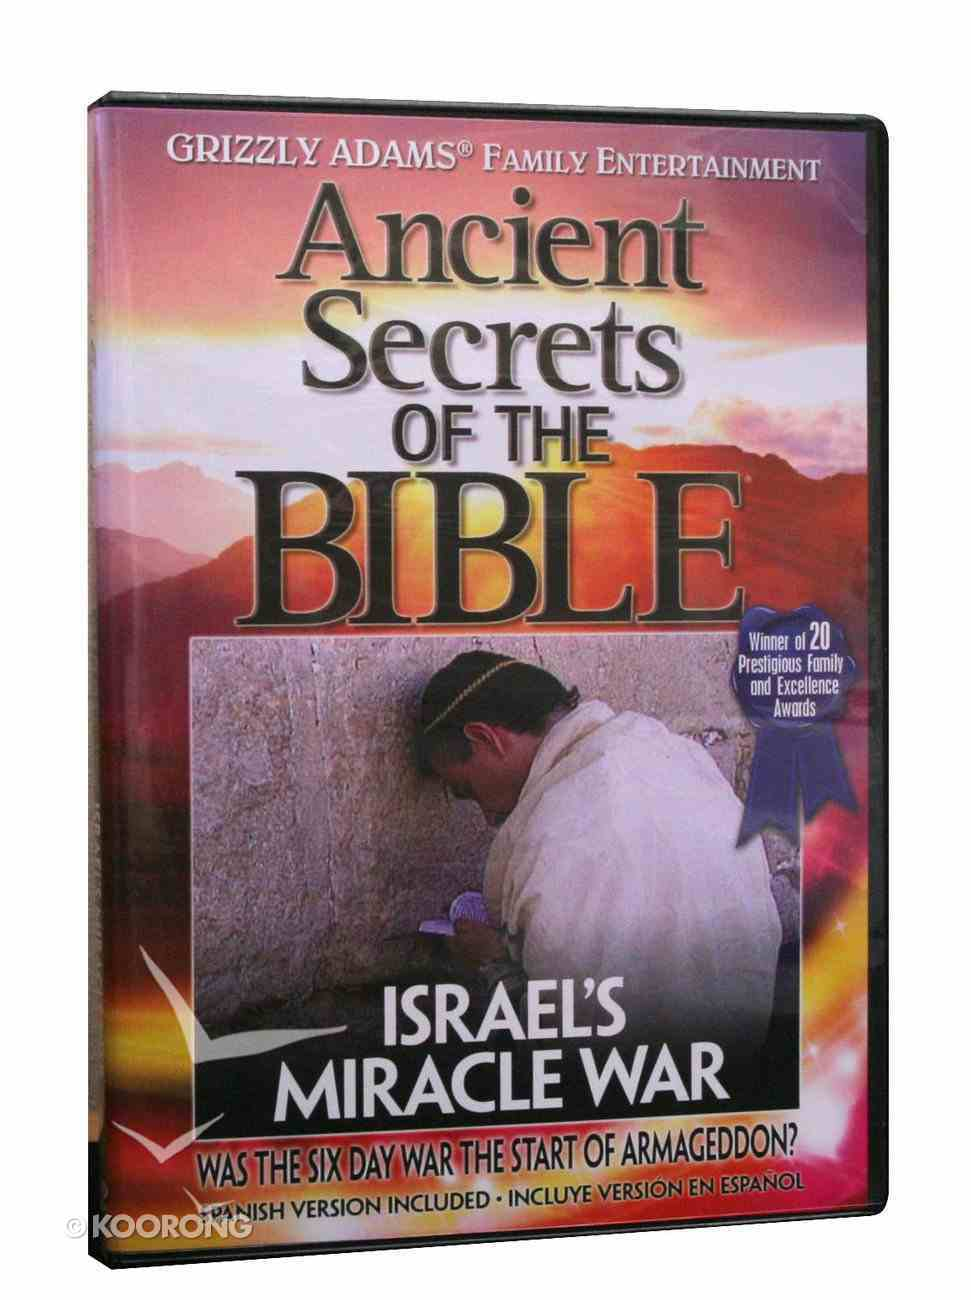 Ancient Secrets 3 #12: Israel's Miracle War (#12 in Ancient Secrets Of The Bible Dvd Series) DVD